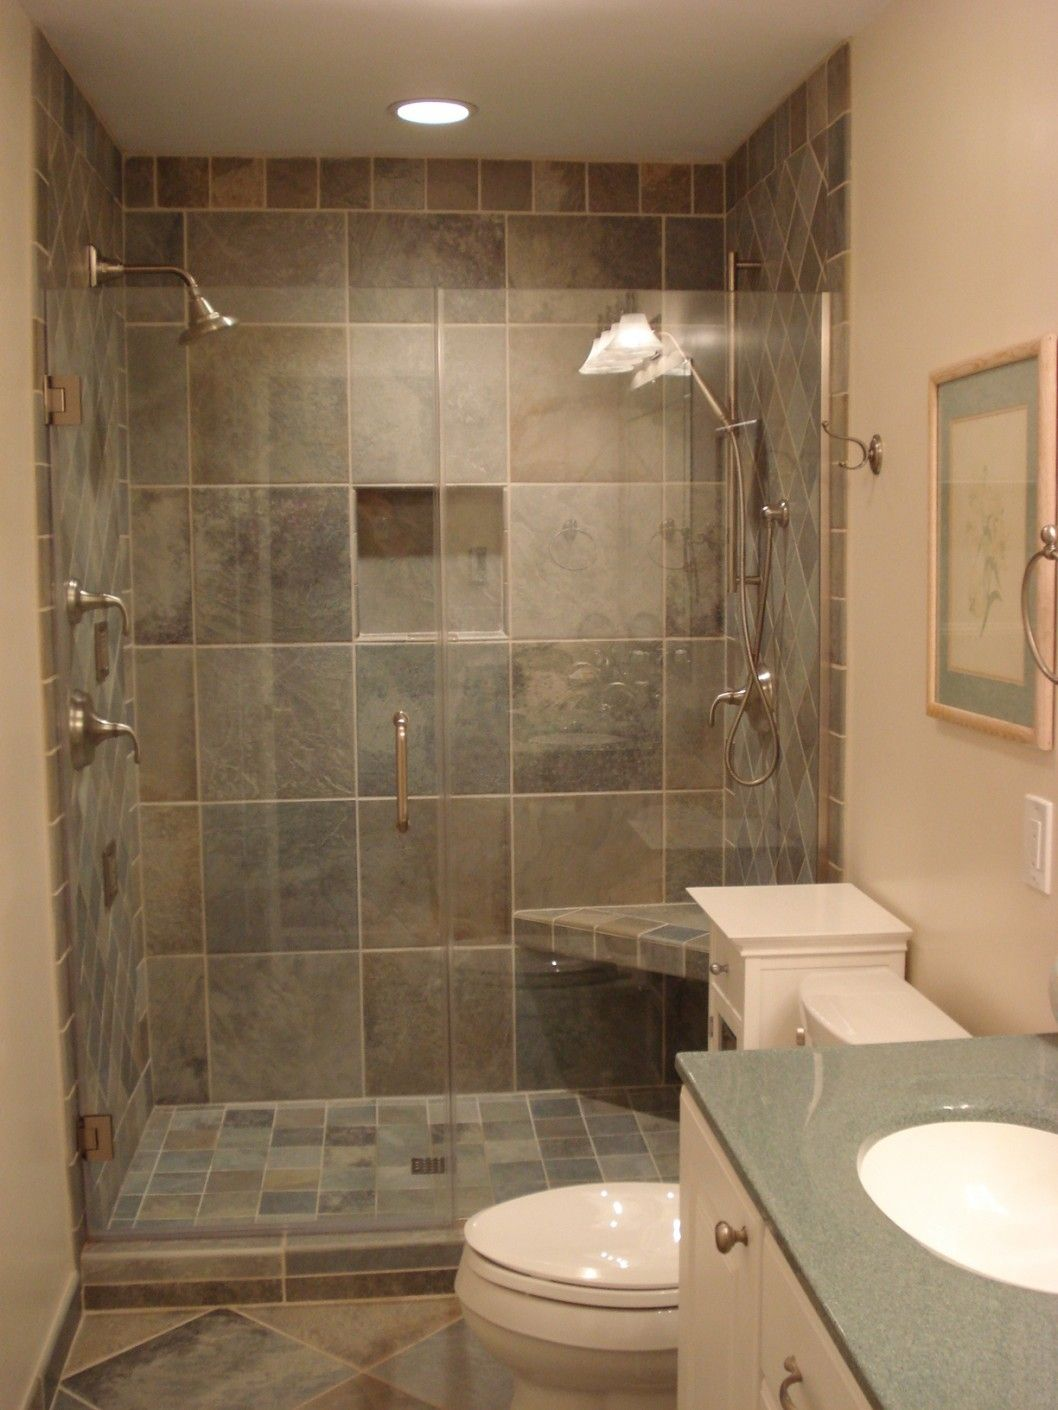 Handicap Bathroom Remodeling Costs best of ideas, remodel bathroom tub and how to remodel my bathroom